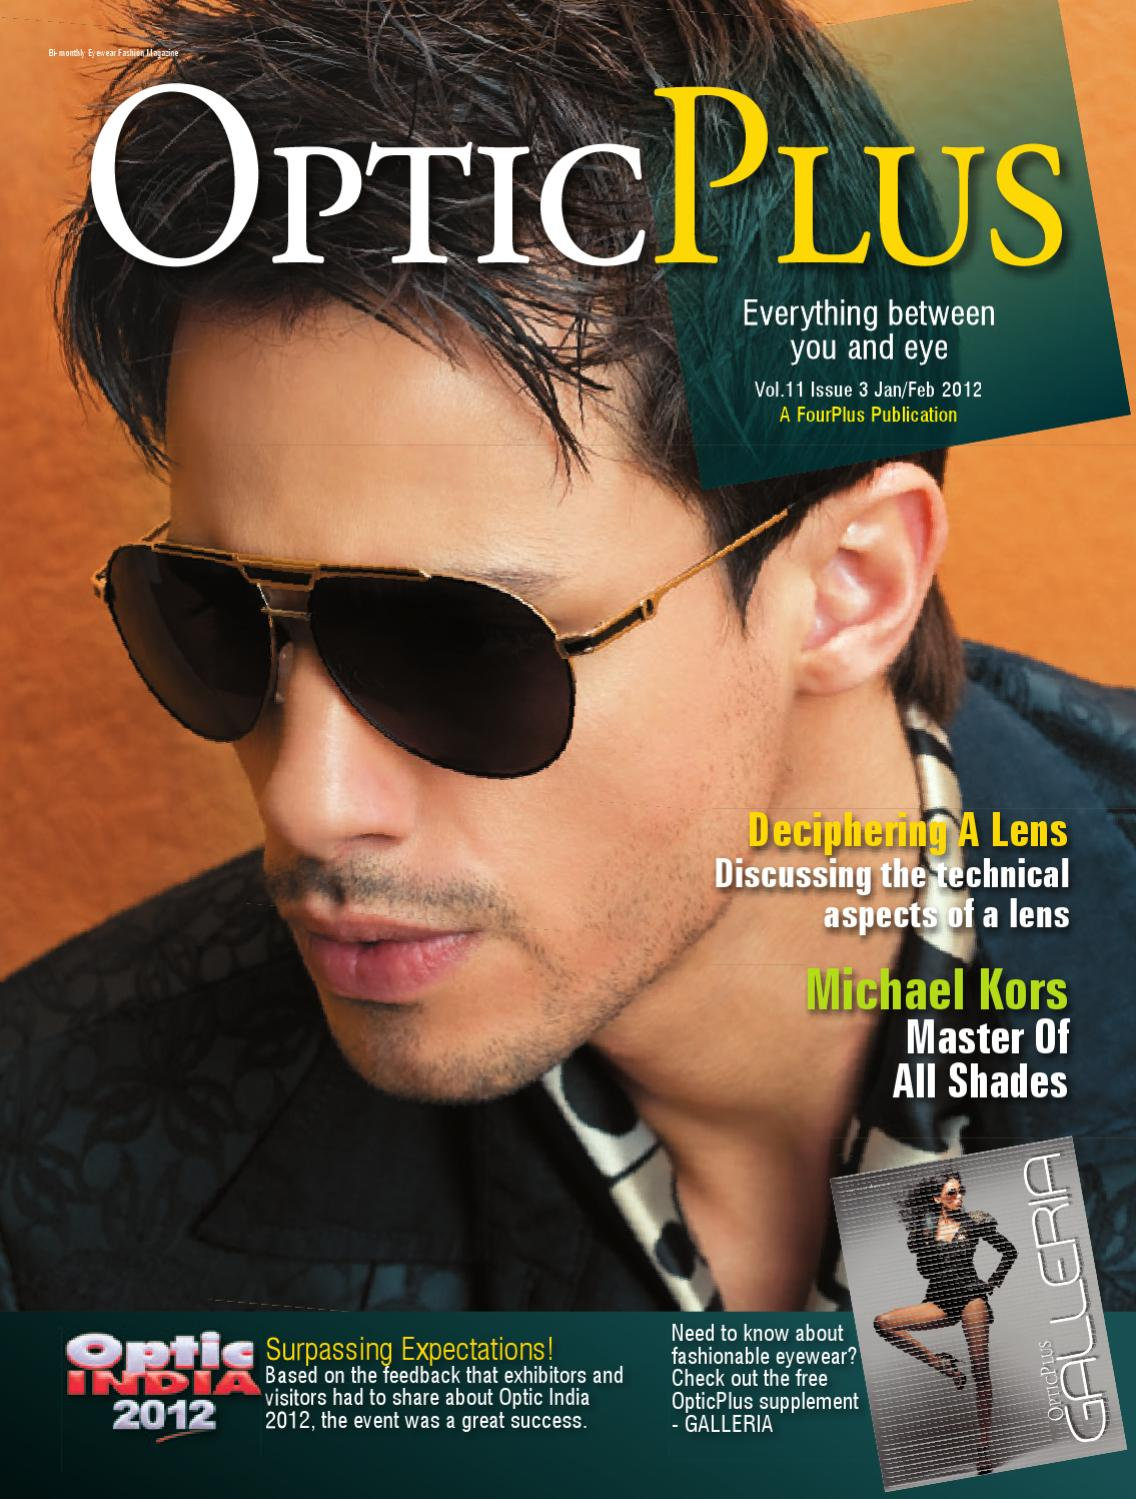 efd74bd81e61 OpticPlus by Optic Plus - issuu